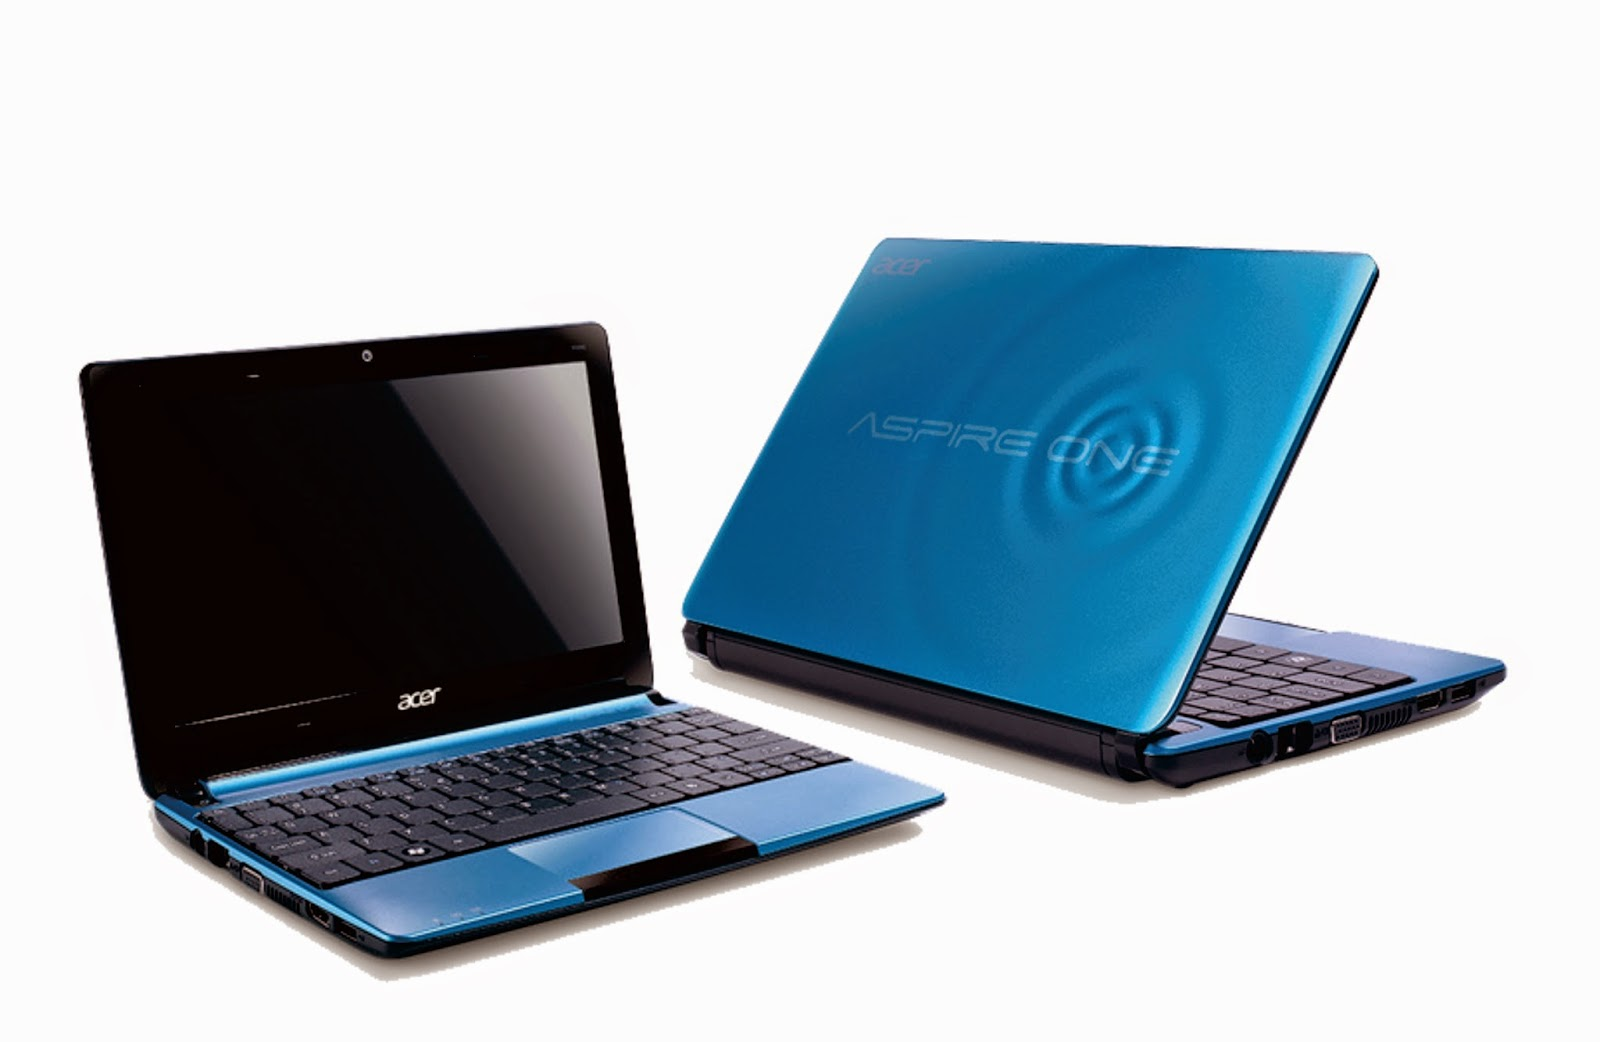 Acer Aspire One D270 Drivers For Windows XP